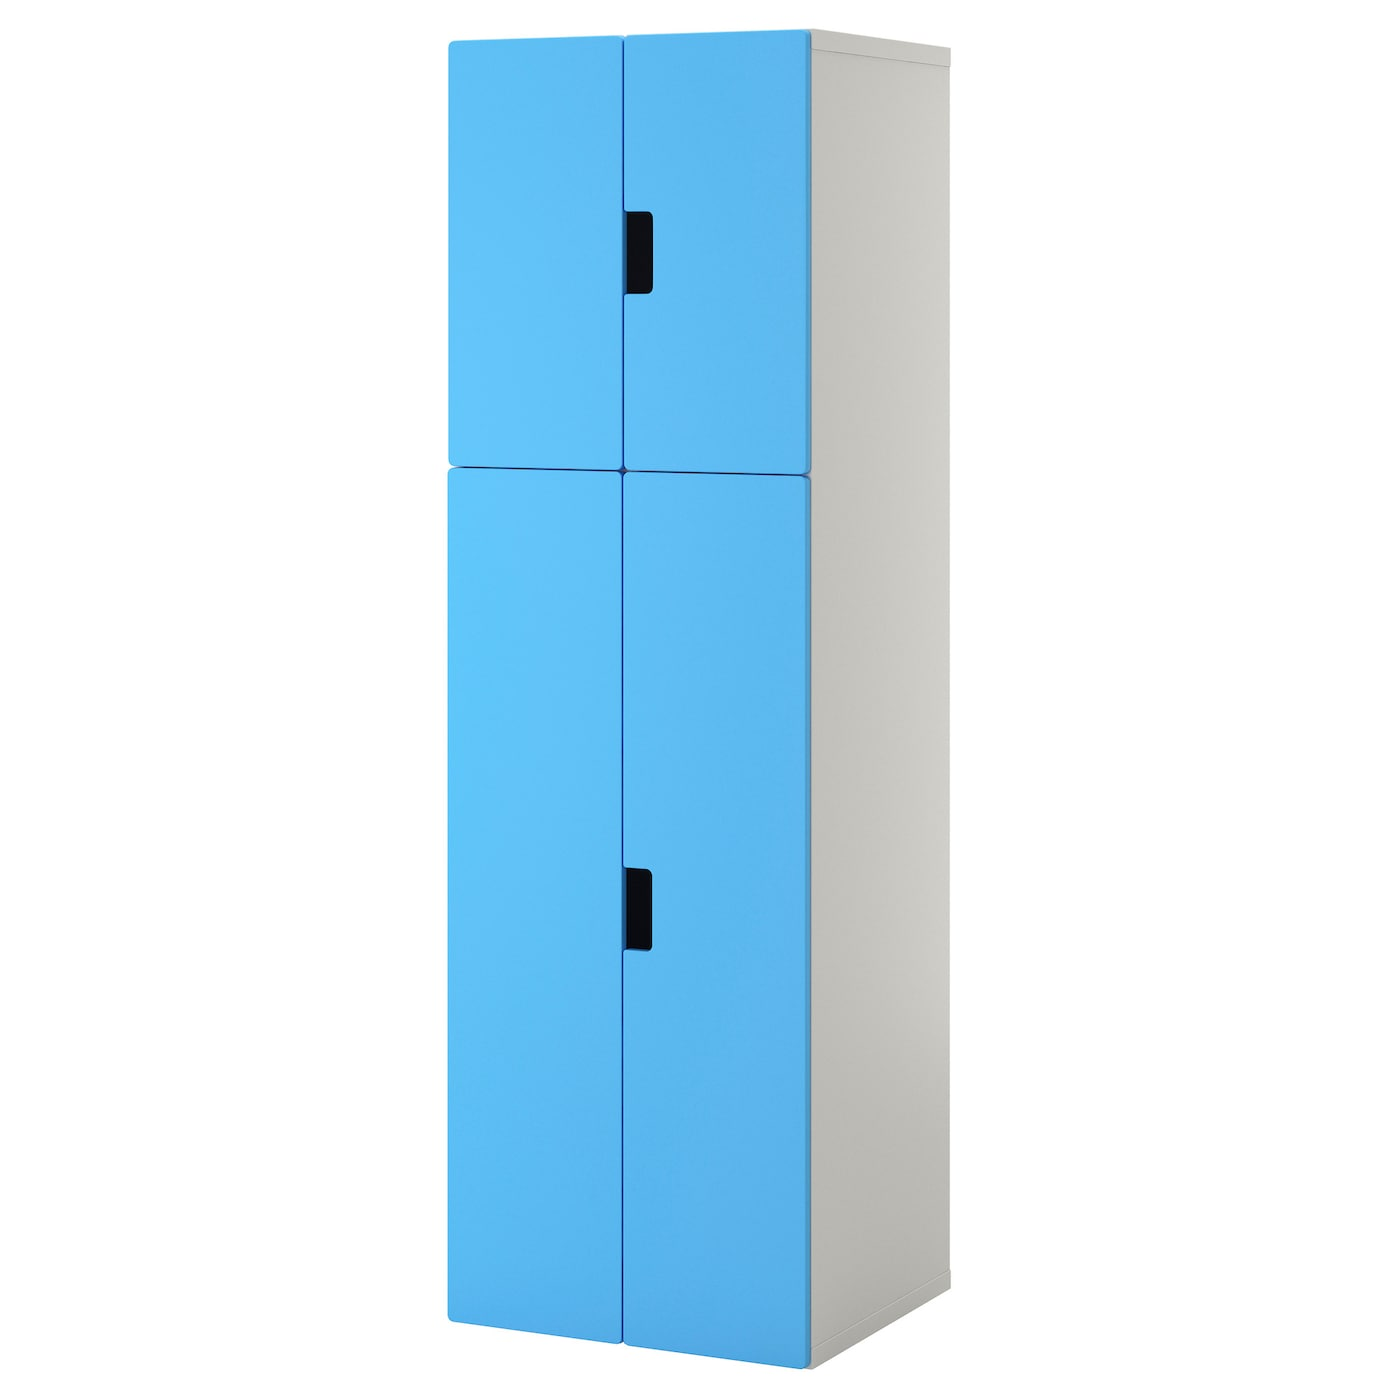 stuva storage combination with doors white blue 60x50x192 cm ikea. Black Bedroom Furniture Sets. Home Design Ideas